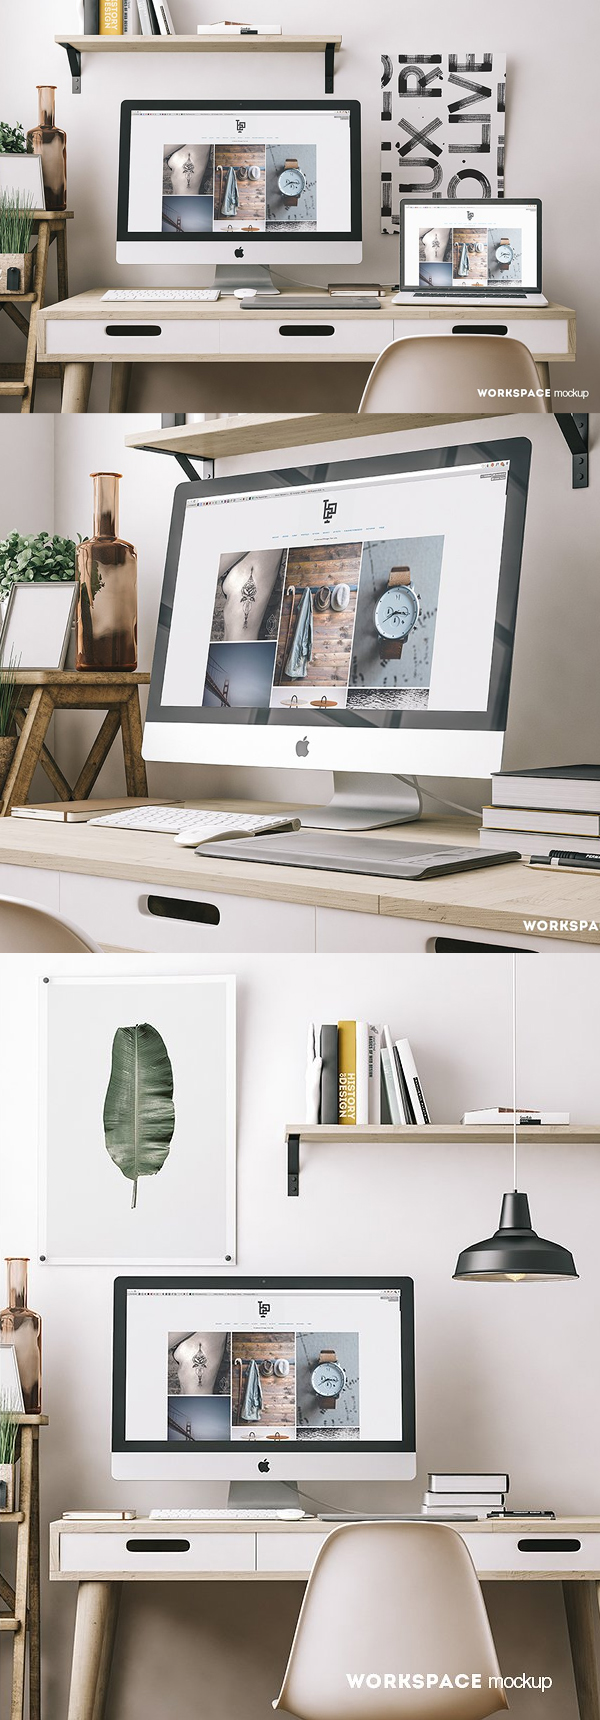 Workspace Mockup Set